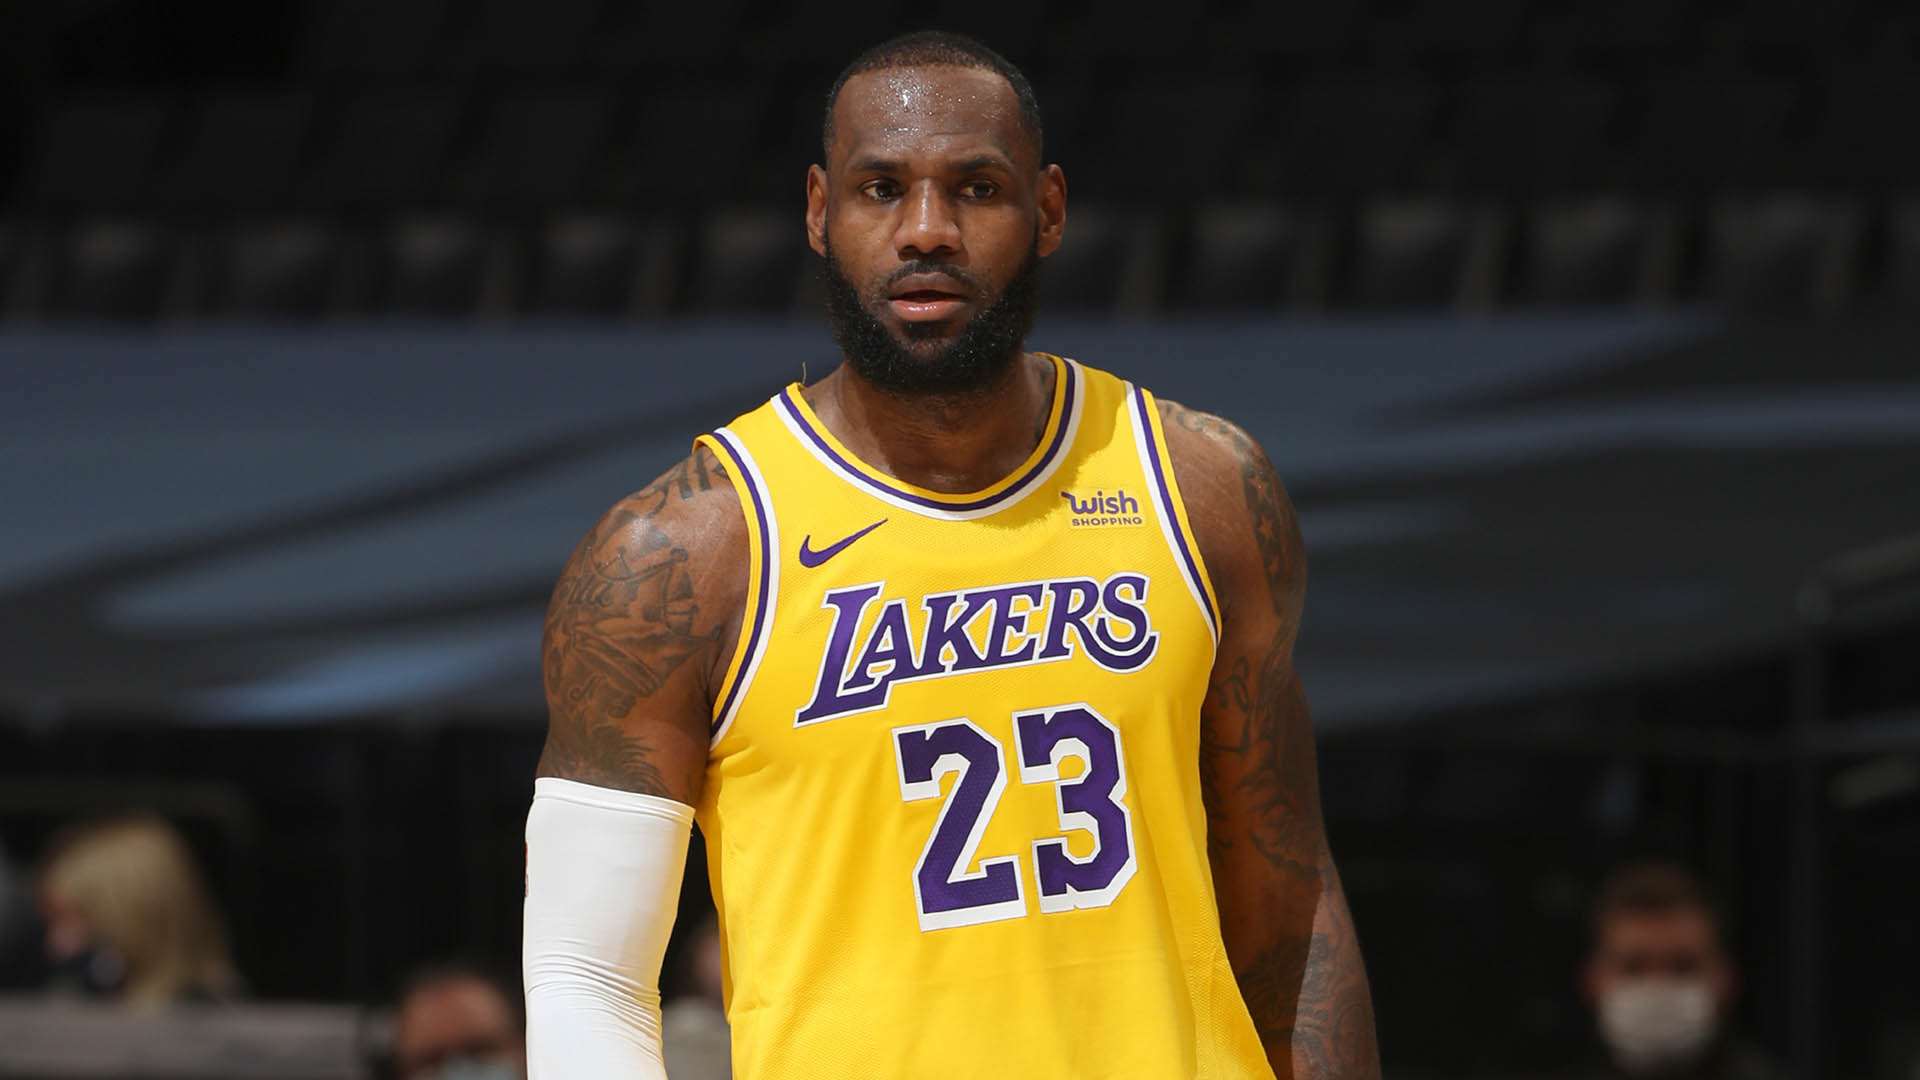 Kia MVP Ladder: LeBron James starts at the top as new chase begins